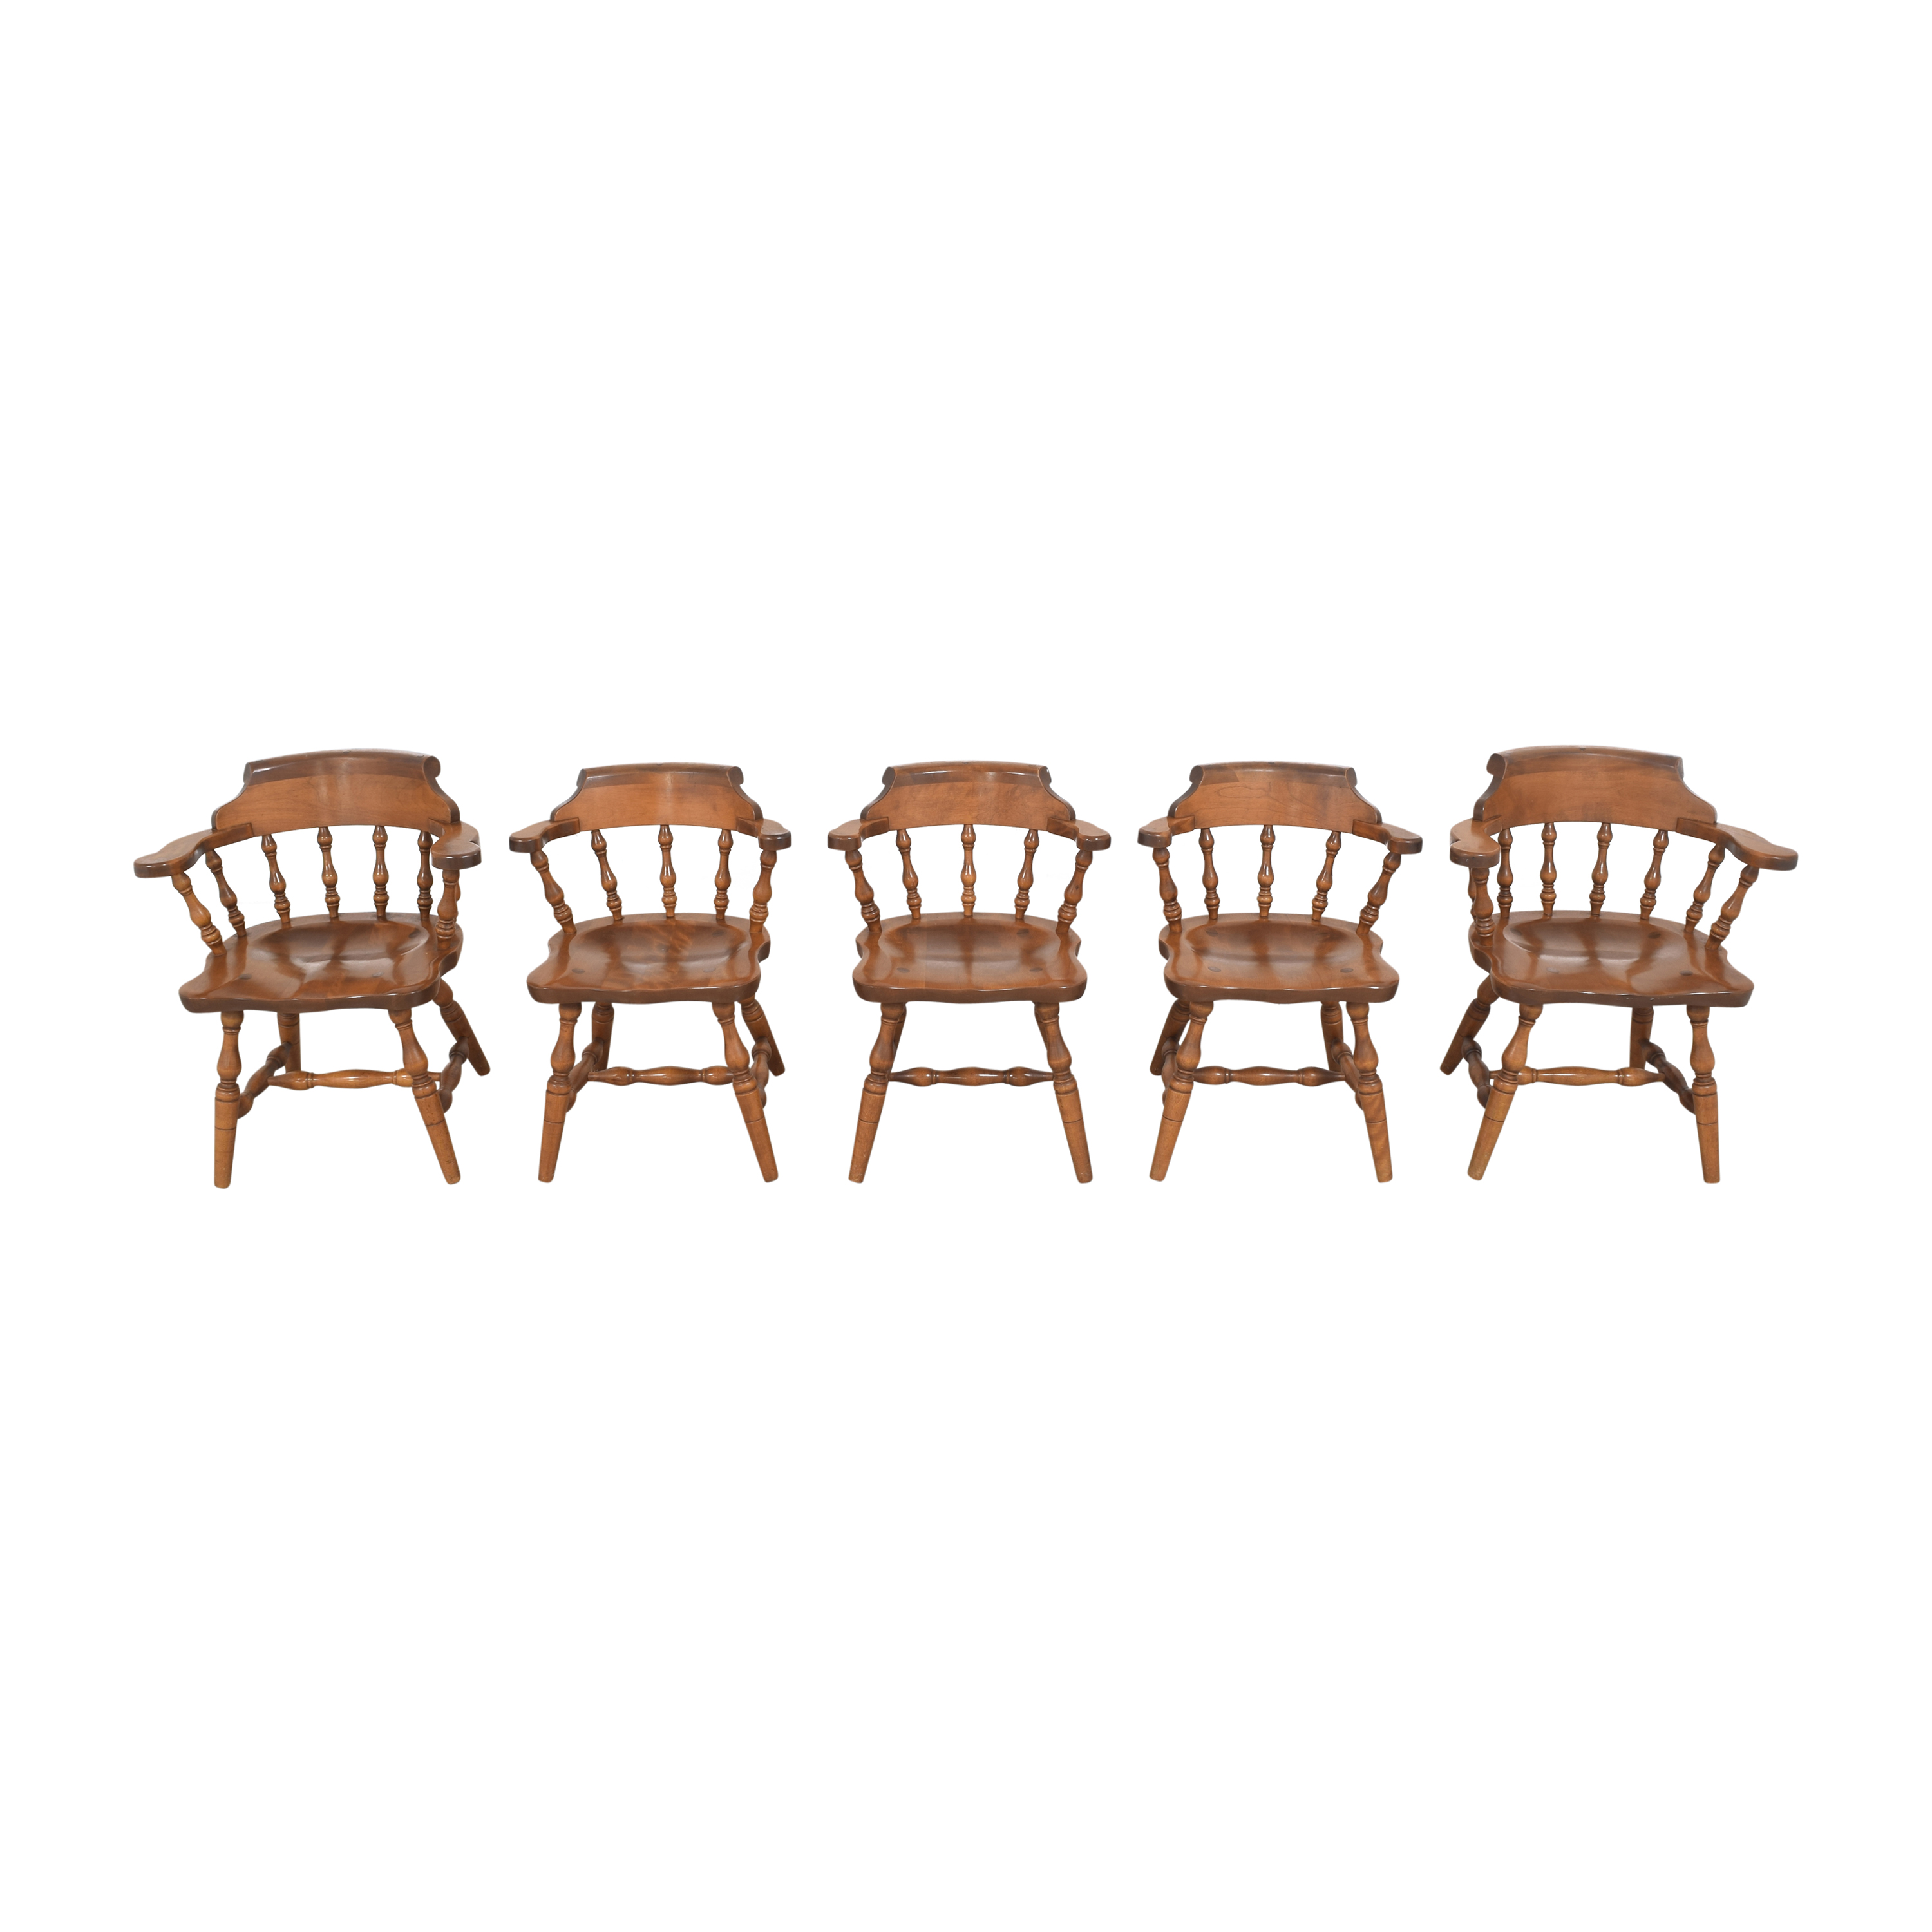 S. Bent & Bros S. Bent & Bros Colonial Windsor Captain's Chairs used